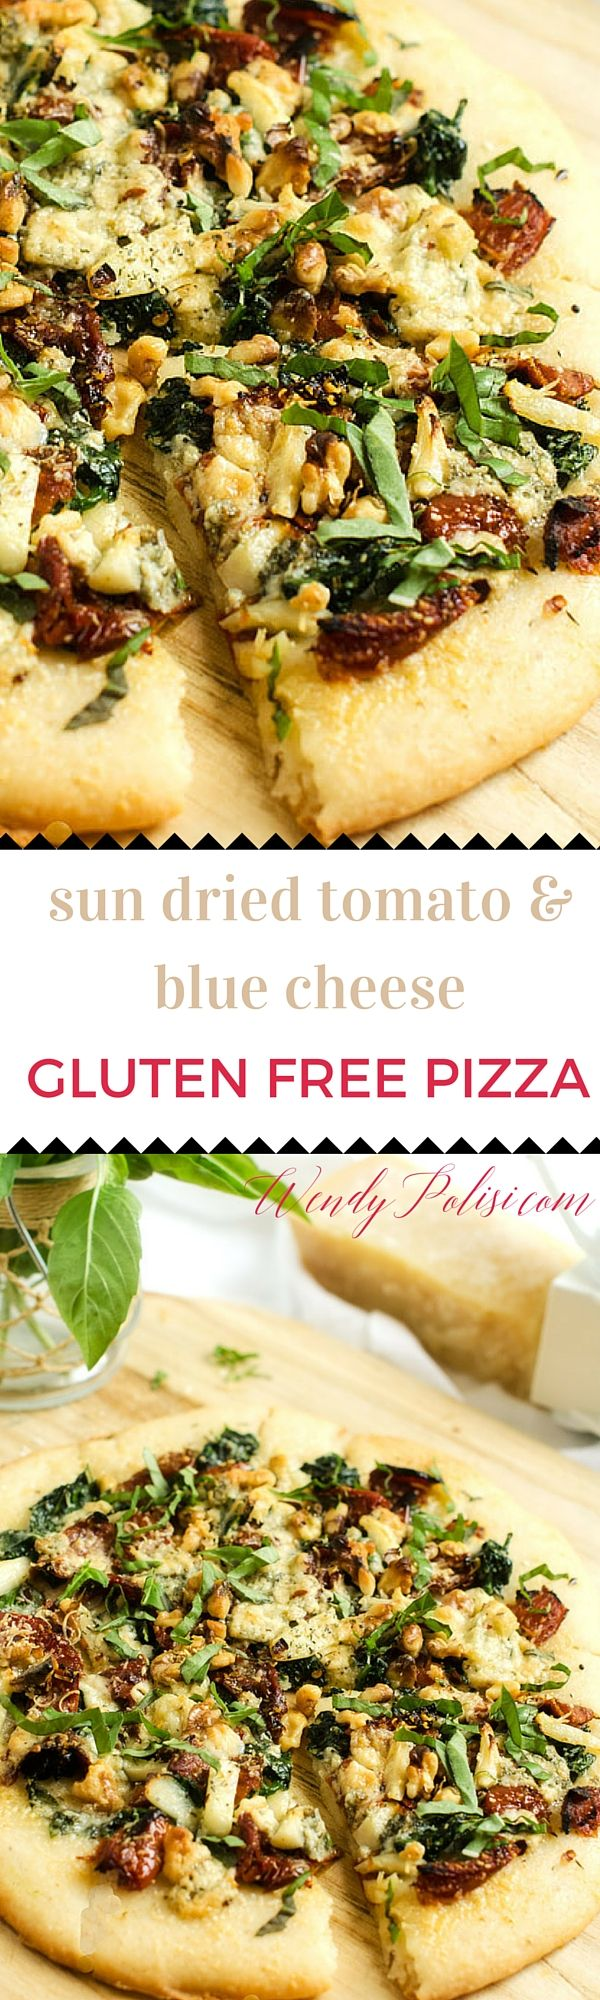 Blue Cheese, Spinach, and Sun-Dried Tomato Pizza - This gluten free pizza is anything but ordinary! With baby spinach, sun-dried tomatoes, garlic, blue cheese, walnuts and Parmesan cheese topped off with fresh basil, this is one you will make again and again.